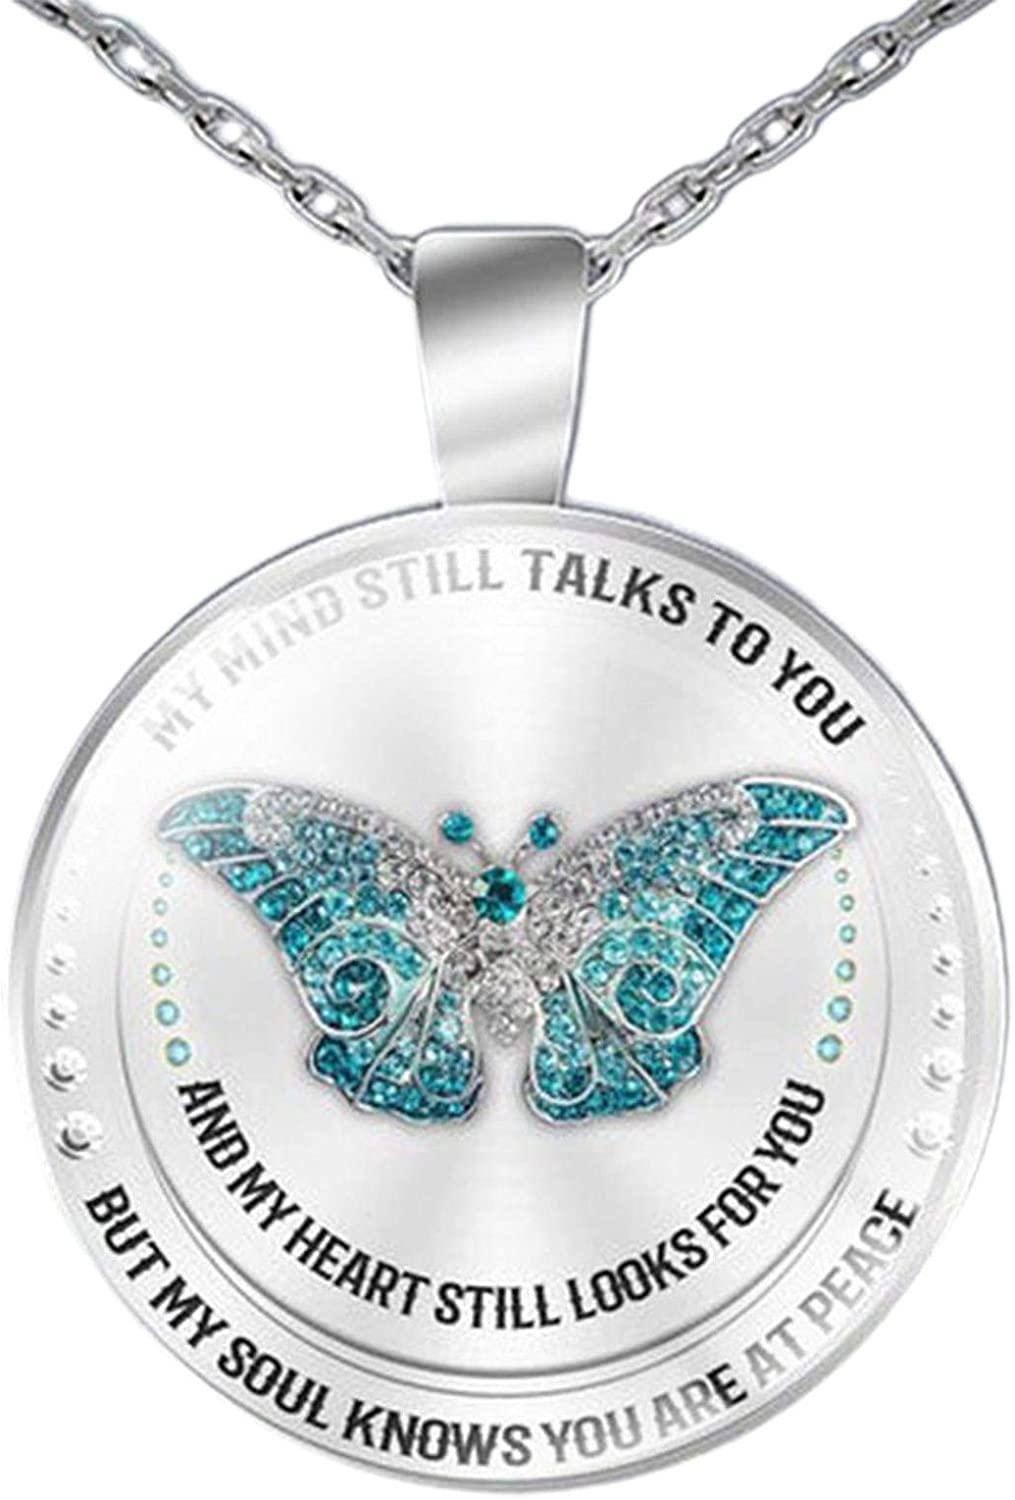 Unisex Necklace My Mind Still Talks To You Time Glass Pendant Jewelry Chain Gift for Women Girls Teens